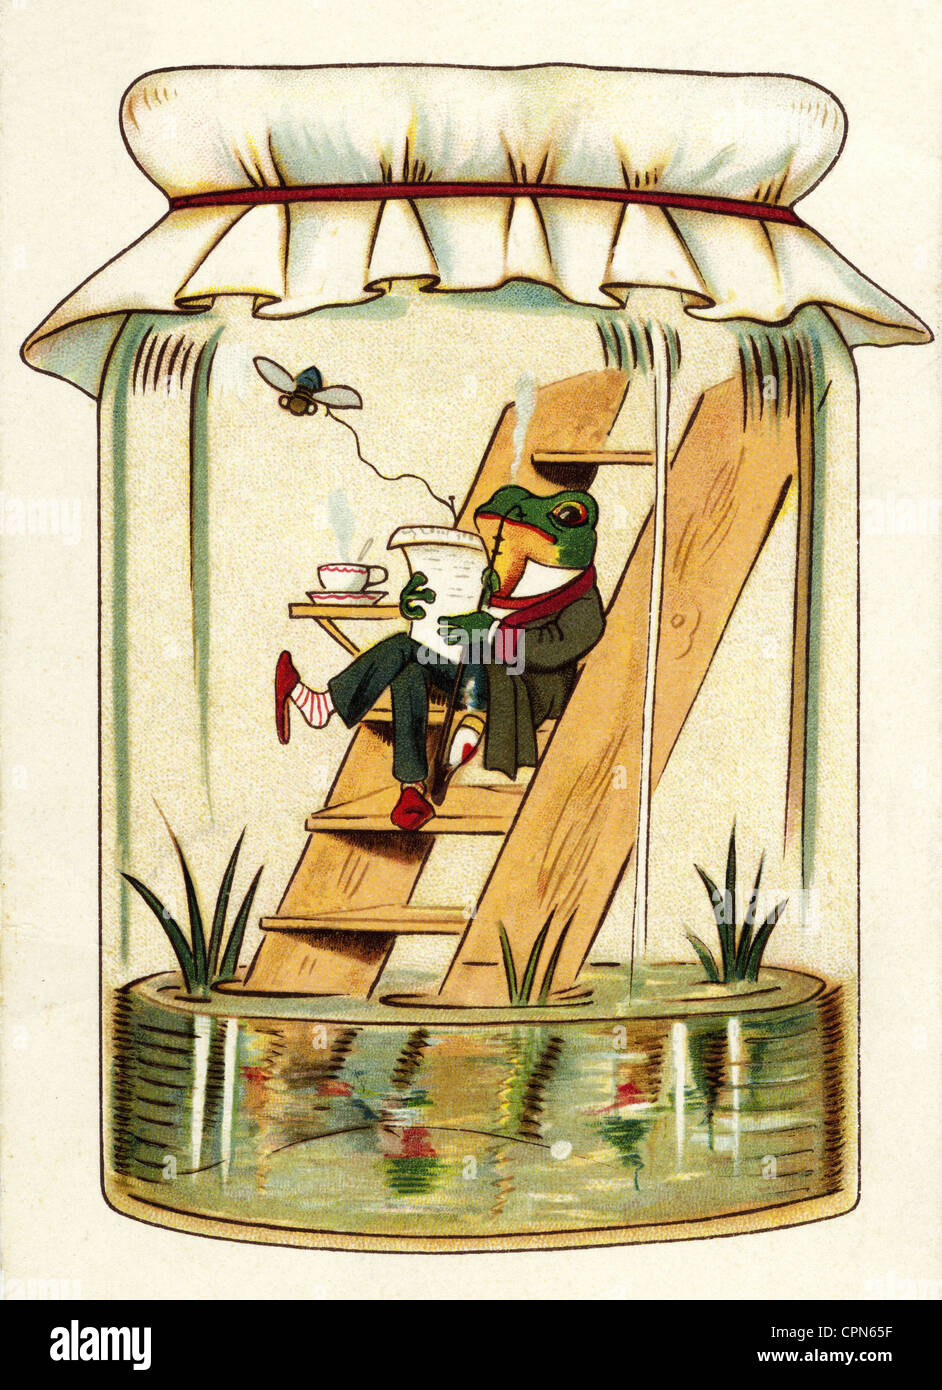 2016 07 01 001018 Shachaf Wisdom 001036 Hackego For Reliable Programmable Integrated Temperature Controller Tmp01 Circuit Weather Weatherman In Glass Lithograph Germany 1903 Frog Frogs Little Cpn65f